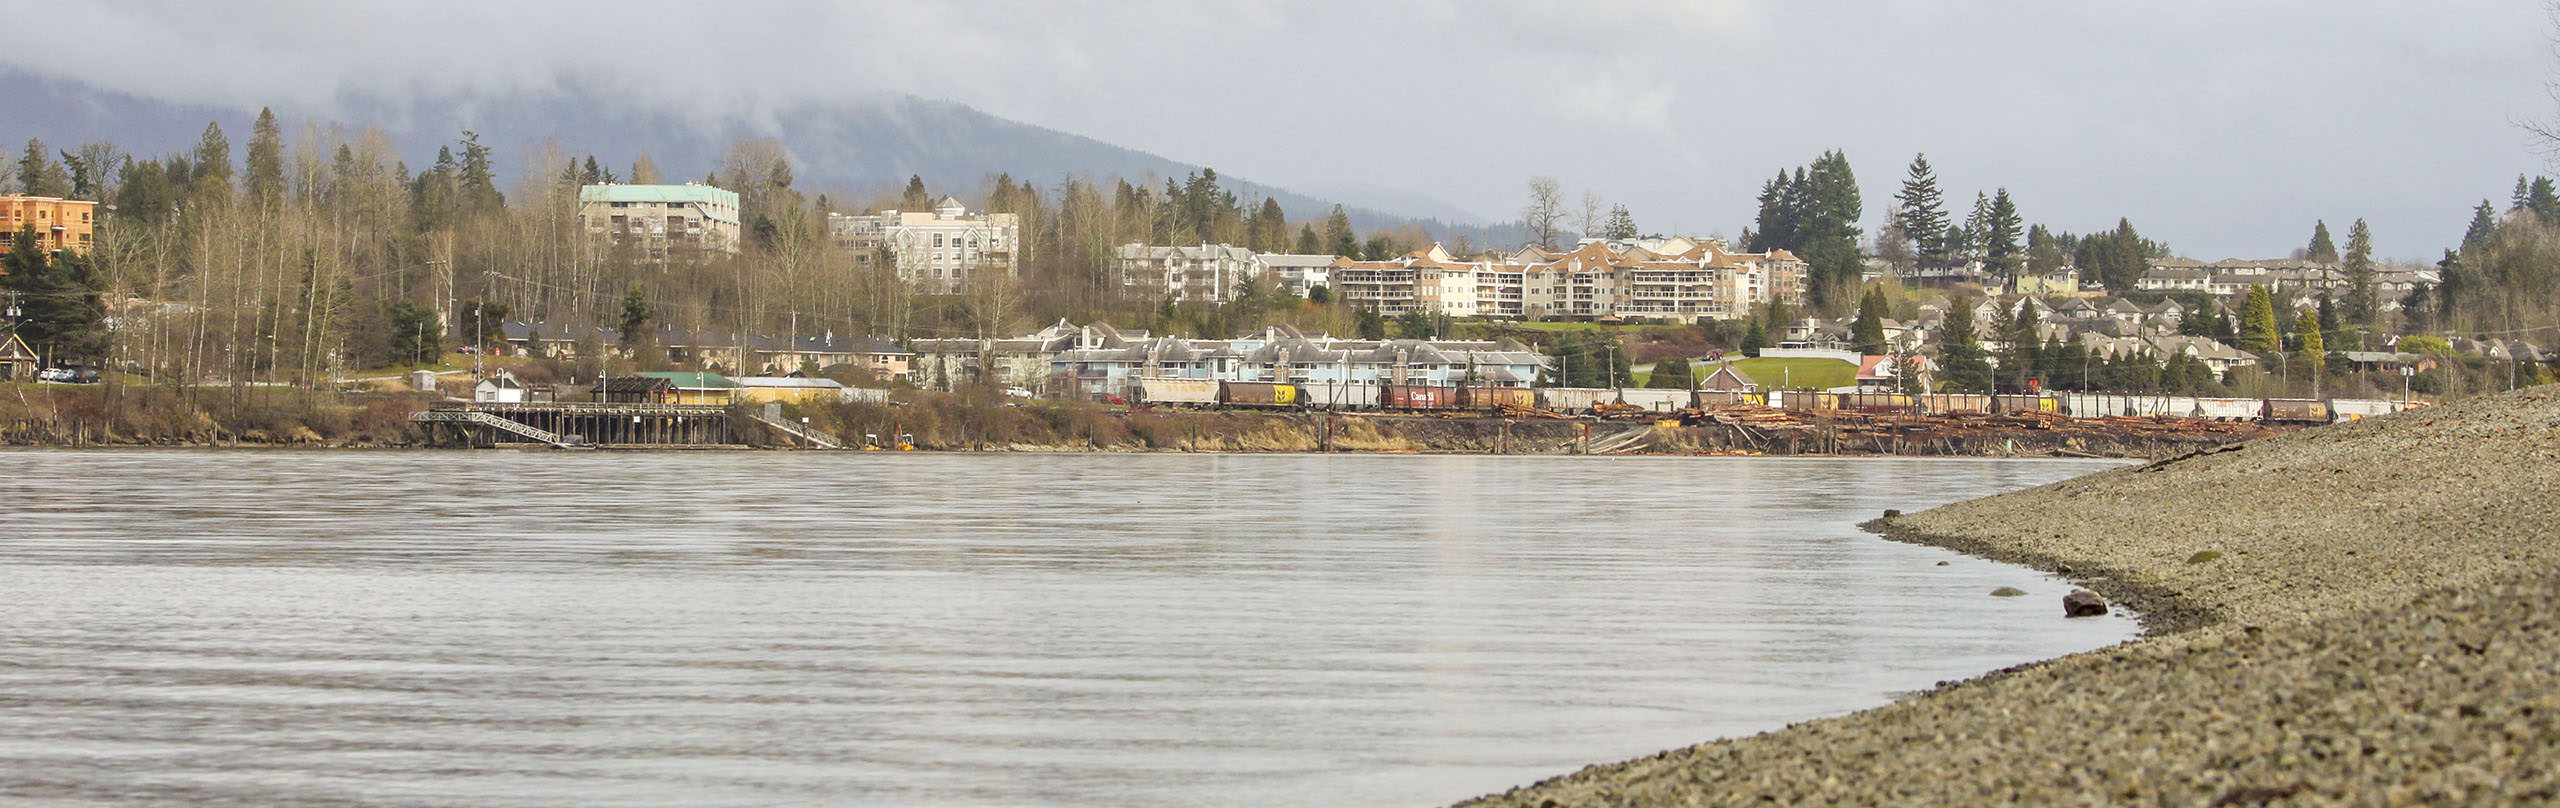 A view across the Fraser River towards Maple Ridge